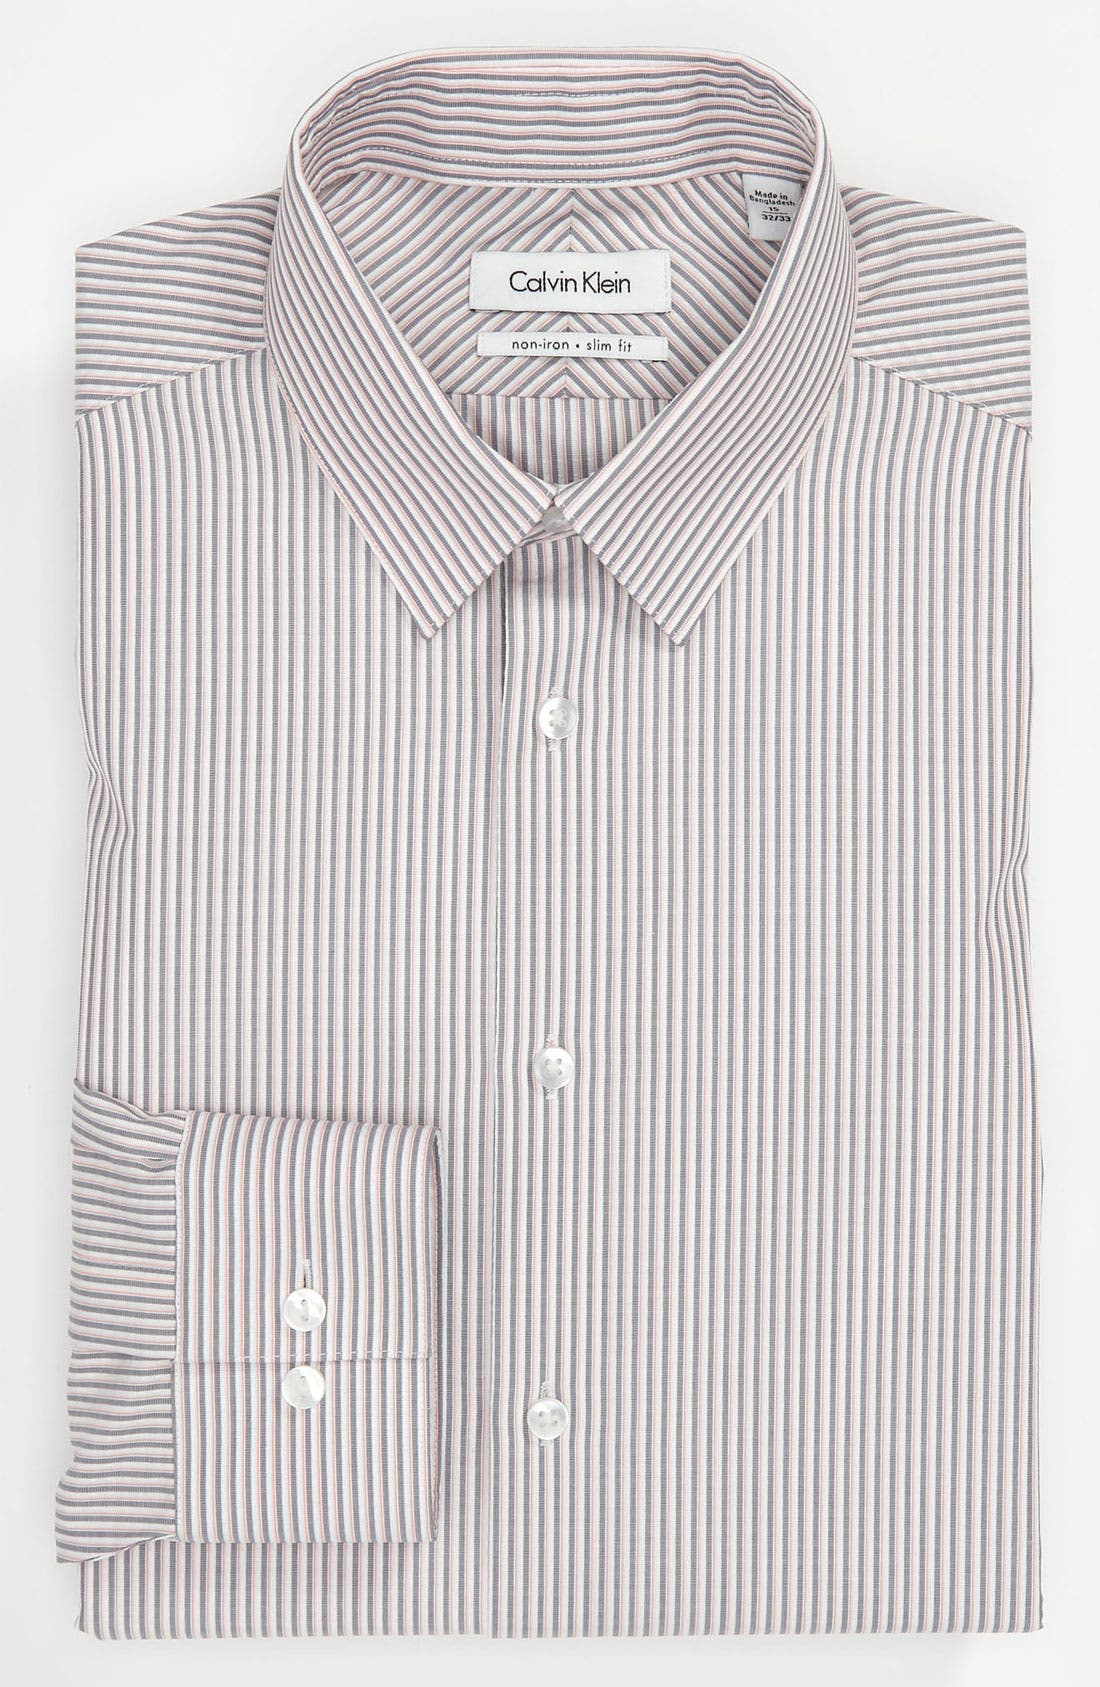 Alternate Image 1 Selected - Calvin Klein 'South Beach Stripe' Slim Fit Dress Shirt